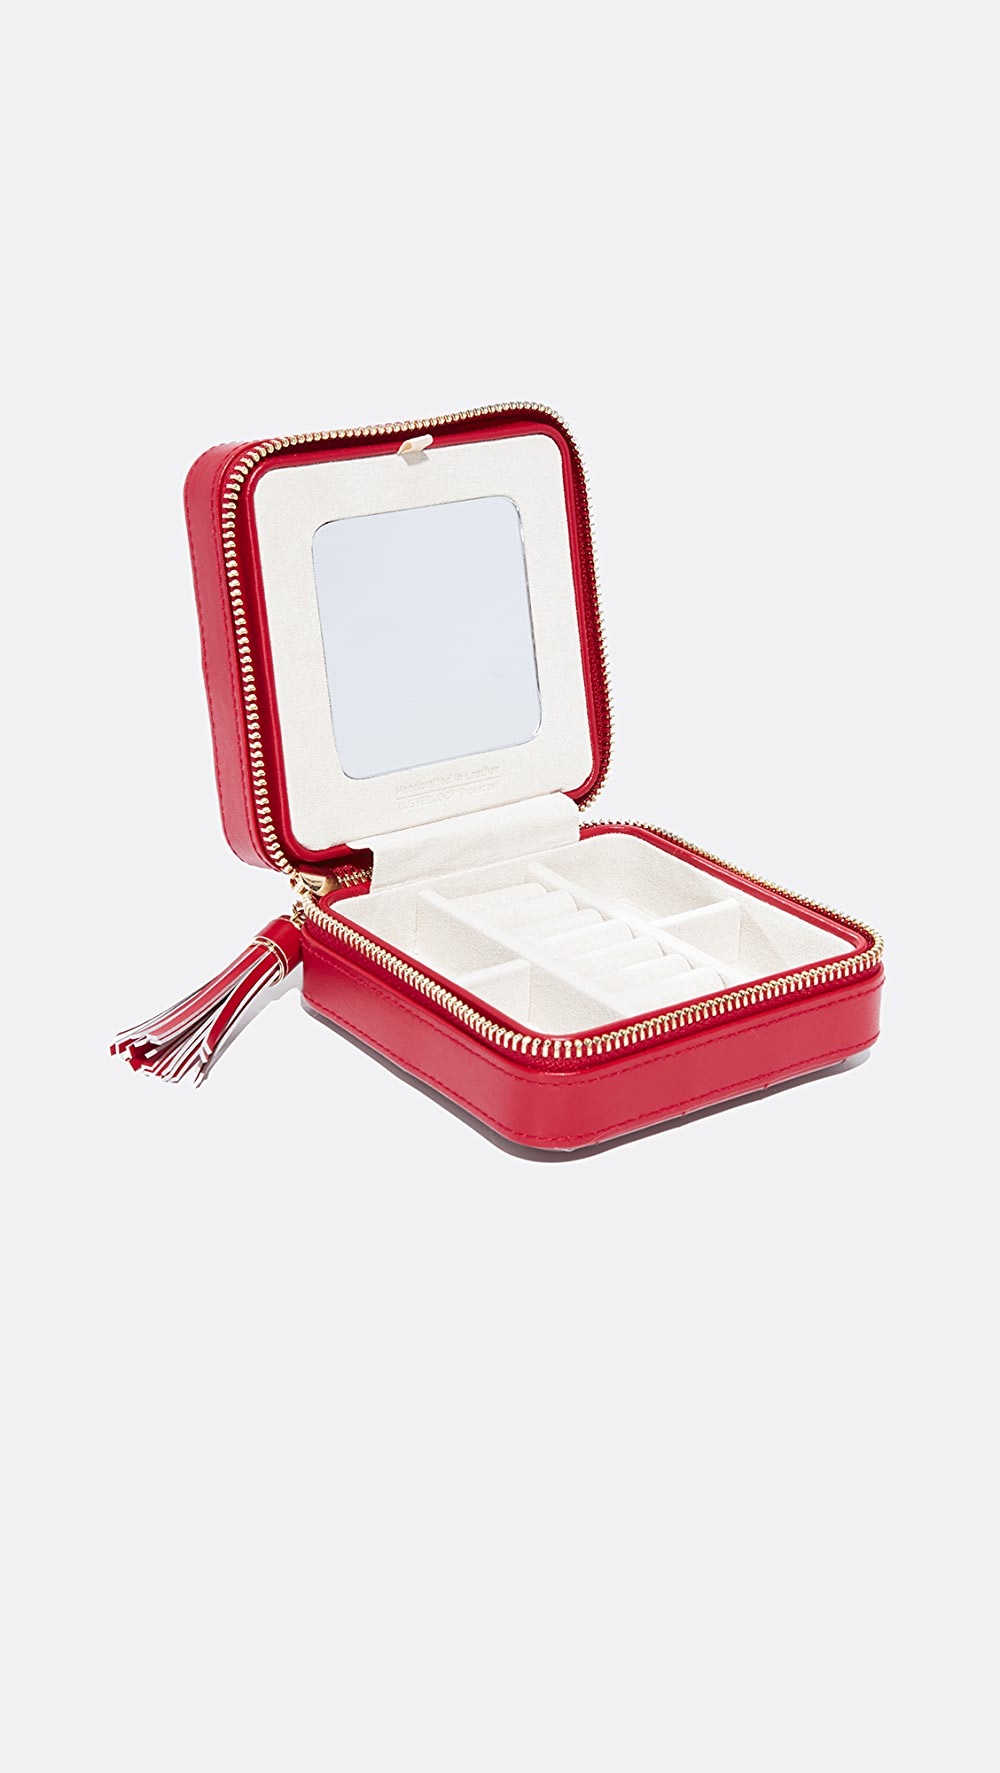 Sporting Shopbop @home - Wolf Caroline Zip Travel Case We Have Won Praise From Customers